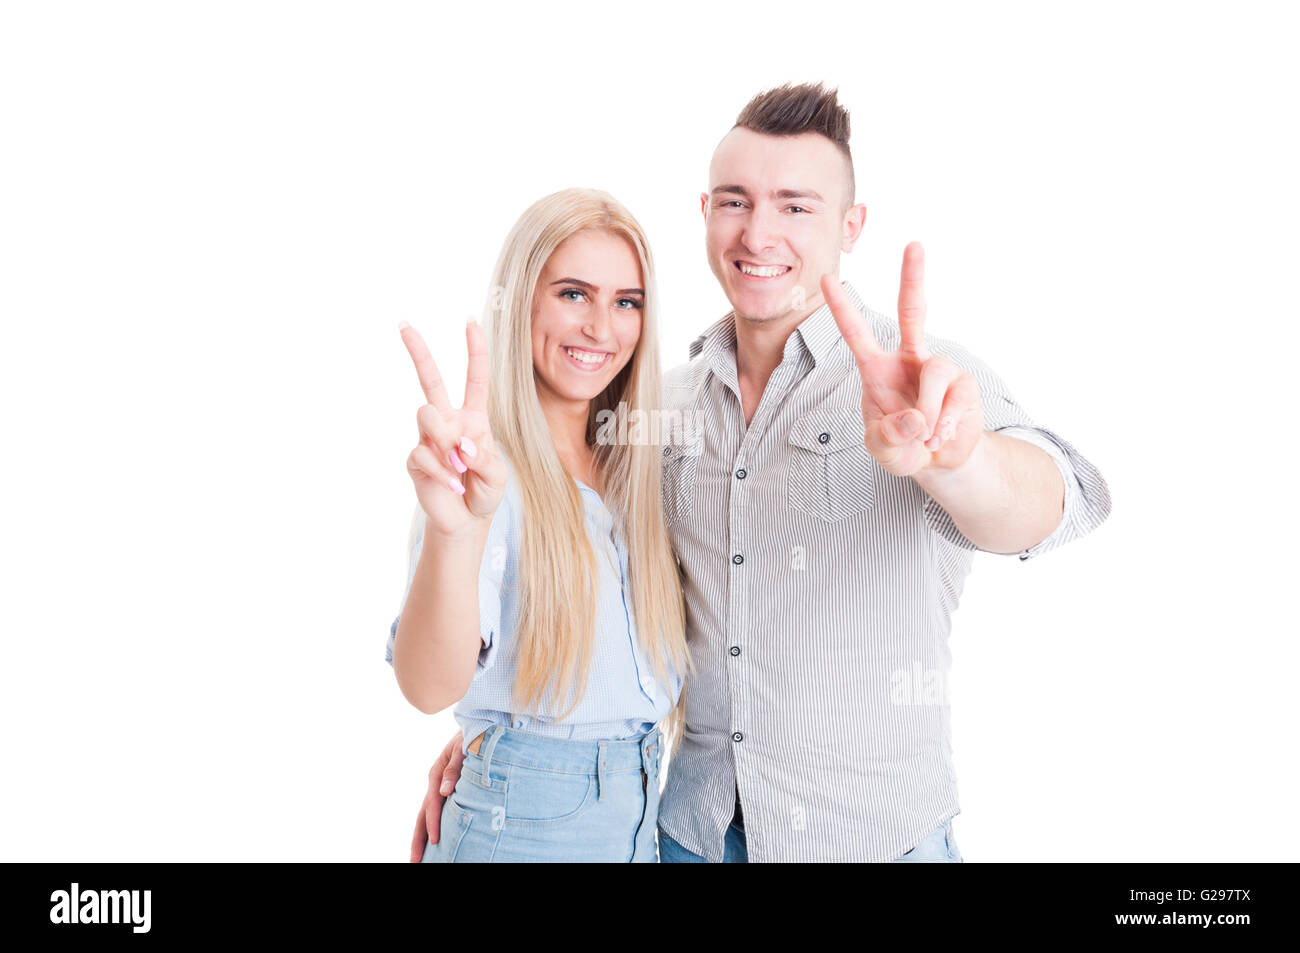 Lovely young couple showing peace or victory sign on white studio background Stock Photo